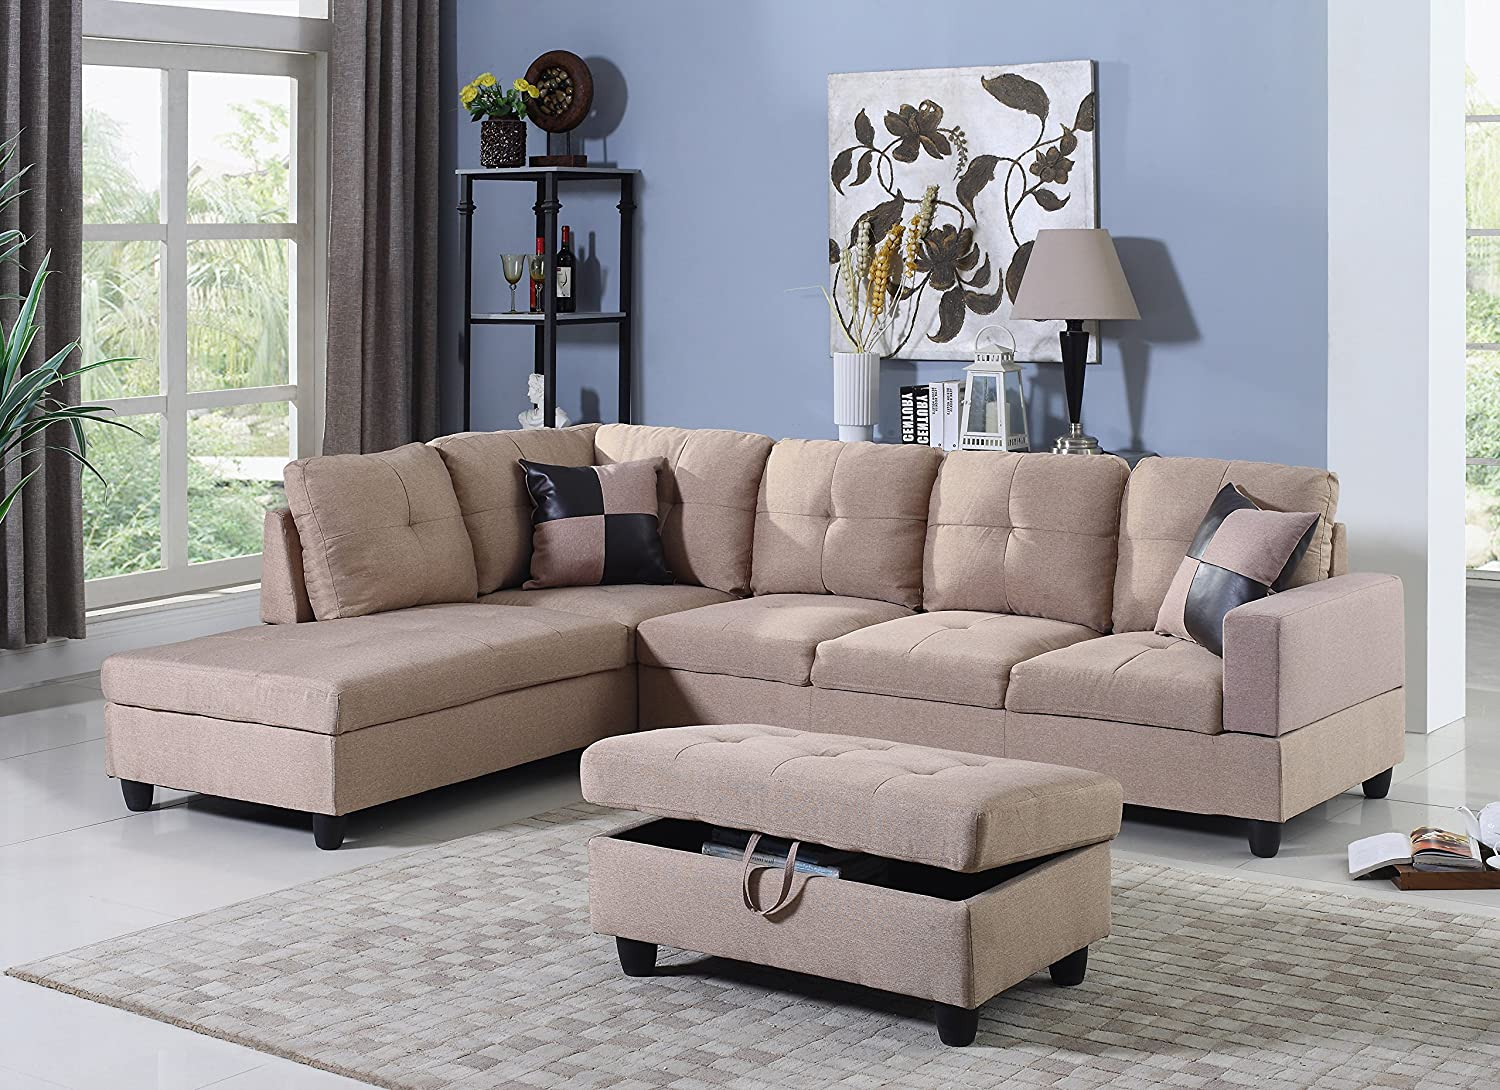 Living Room Furniture Sets Sofa And Loveseat Sets Microfiber Sectional Sofa With Chaise